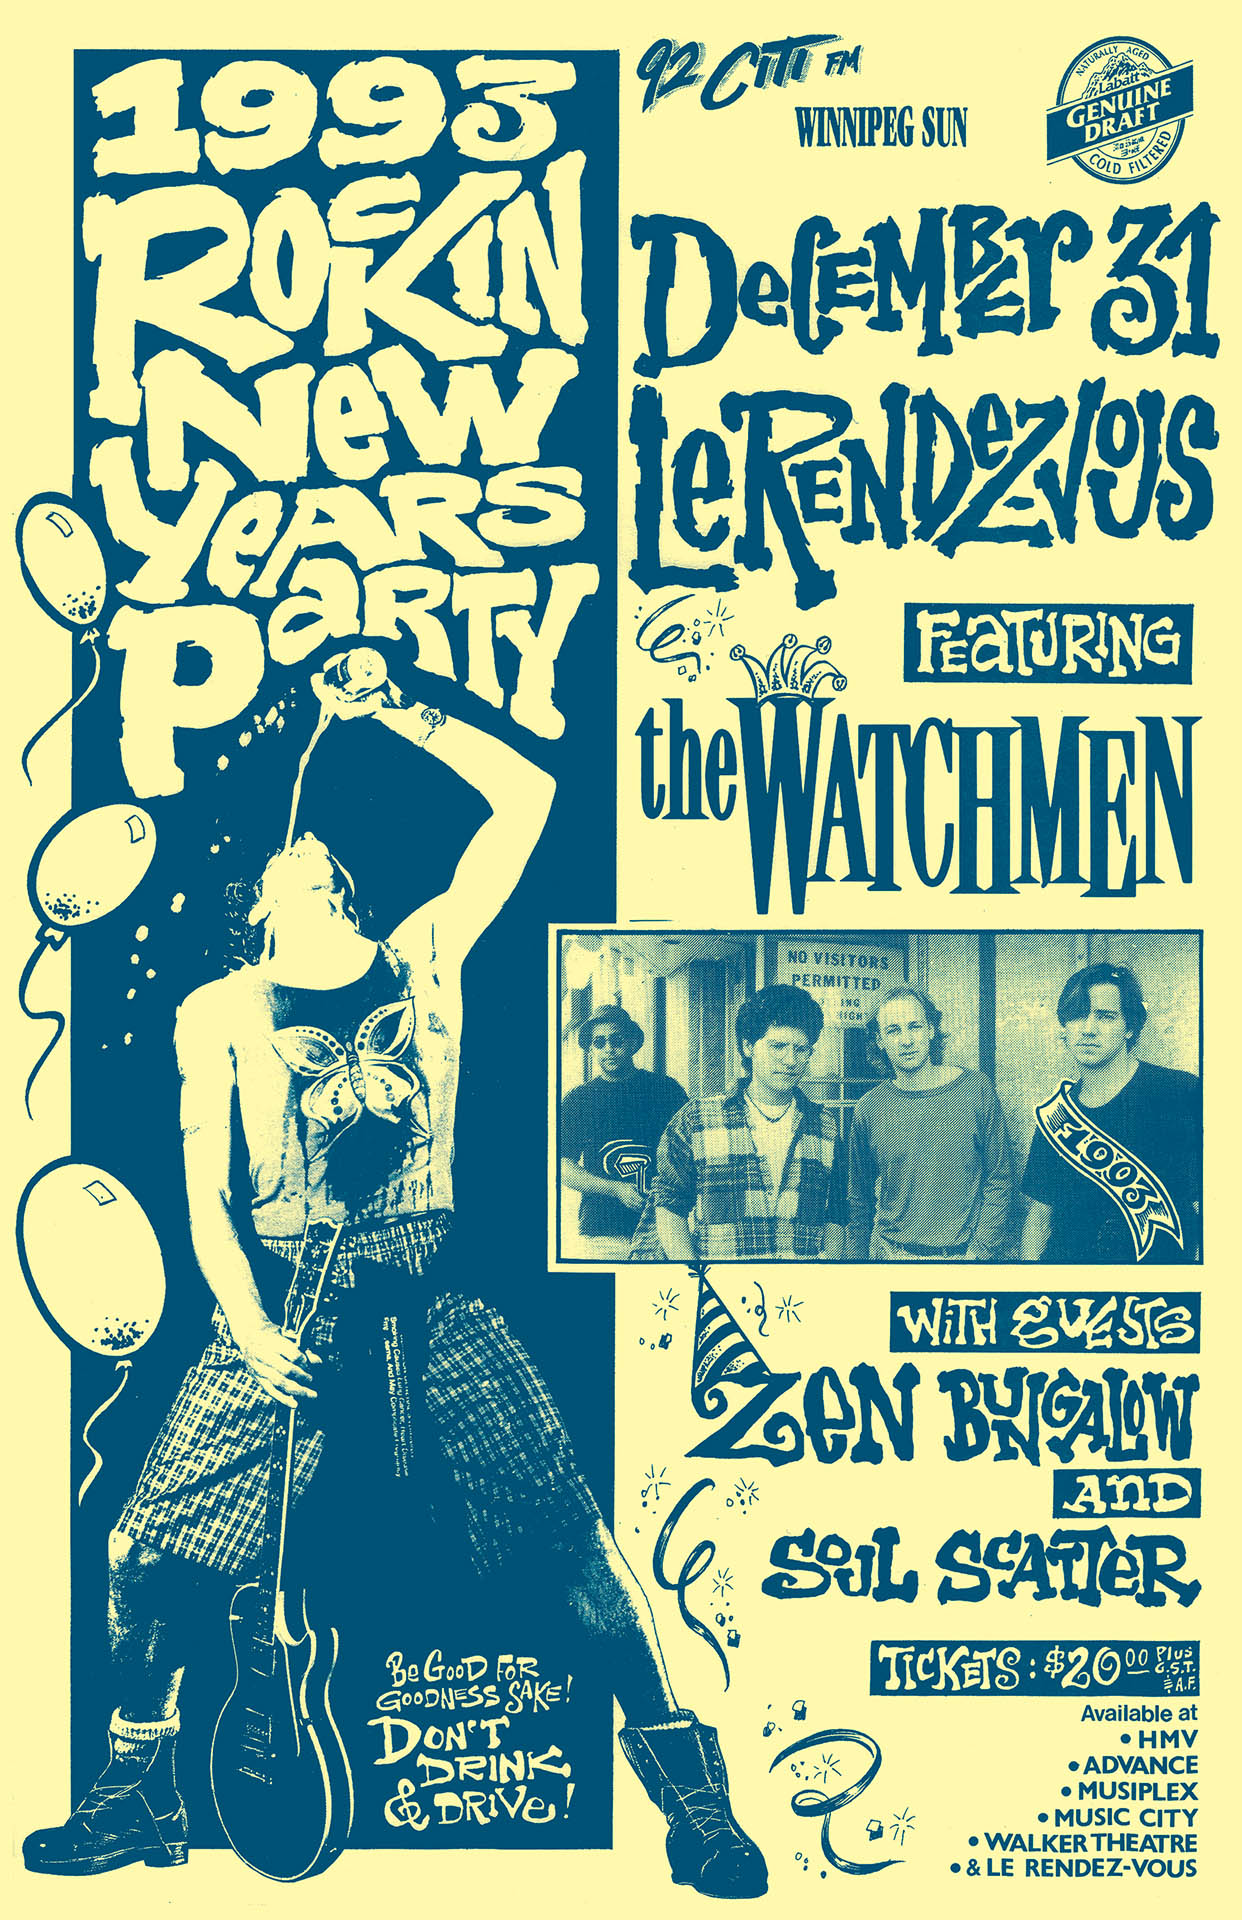 1993 Rockin New Years Party - 1992